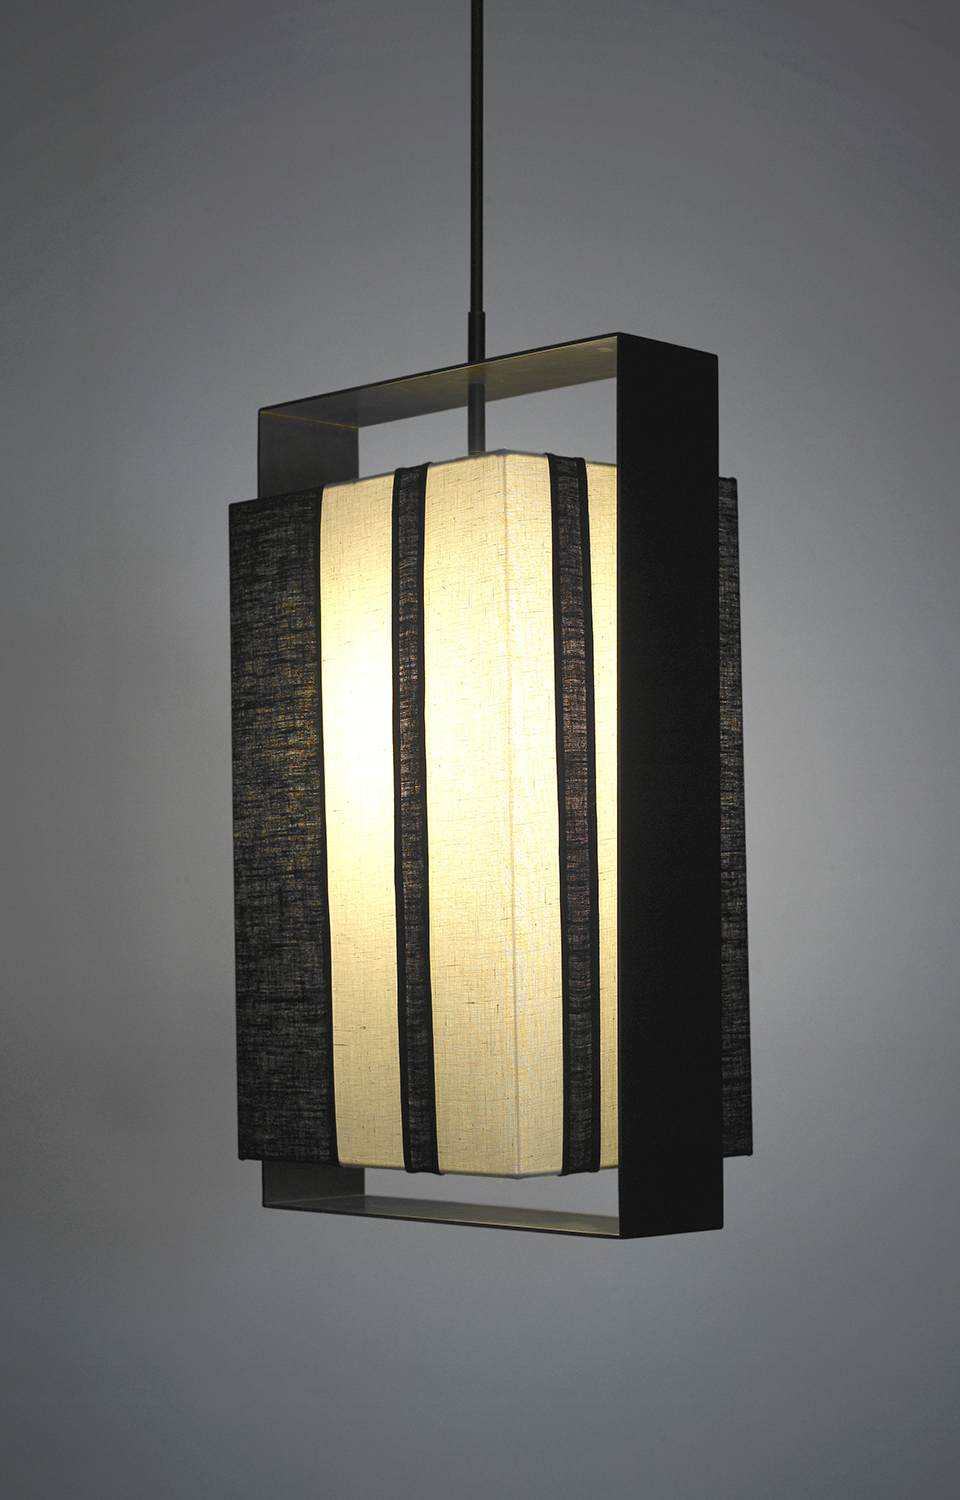 Halo_C-146_Halo Box Pendant with Vertical Stipes_Black_White with Black.jpg